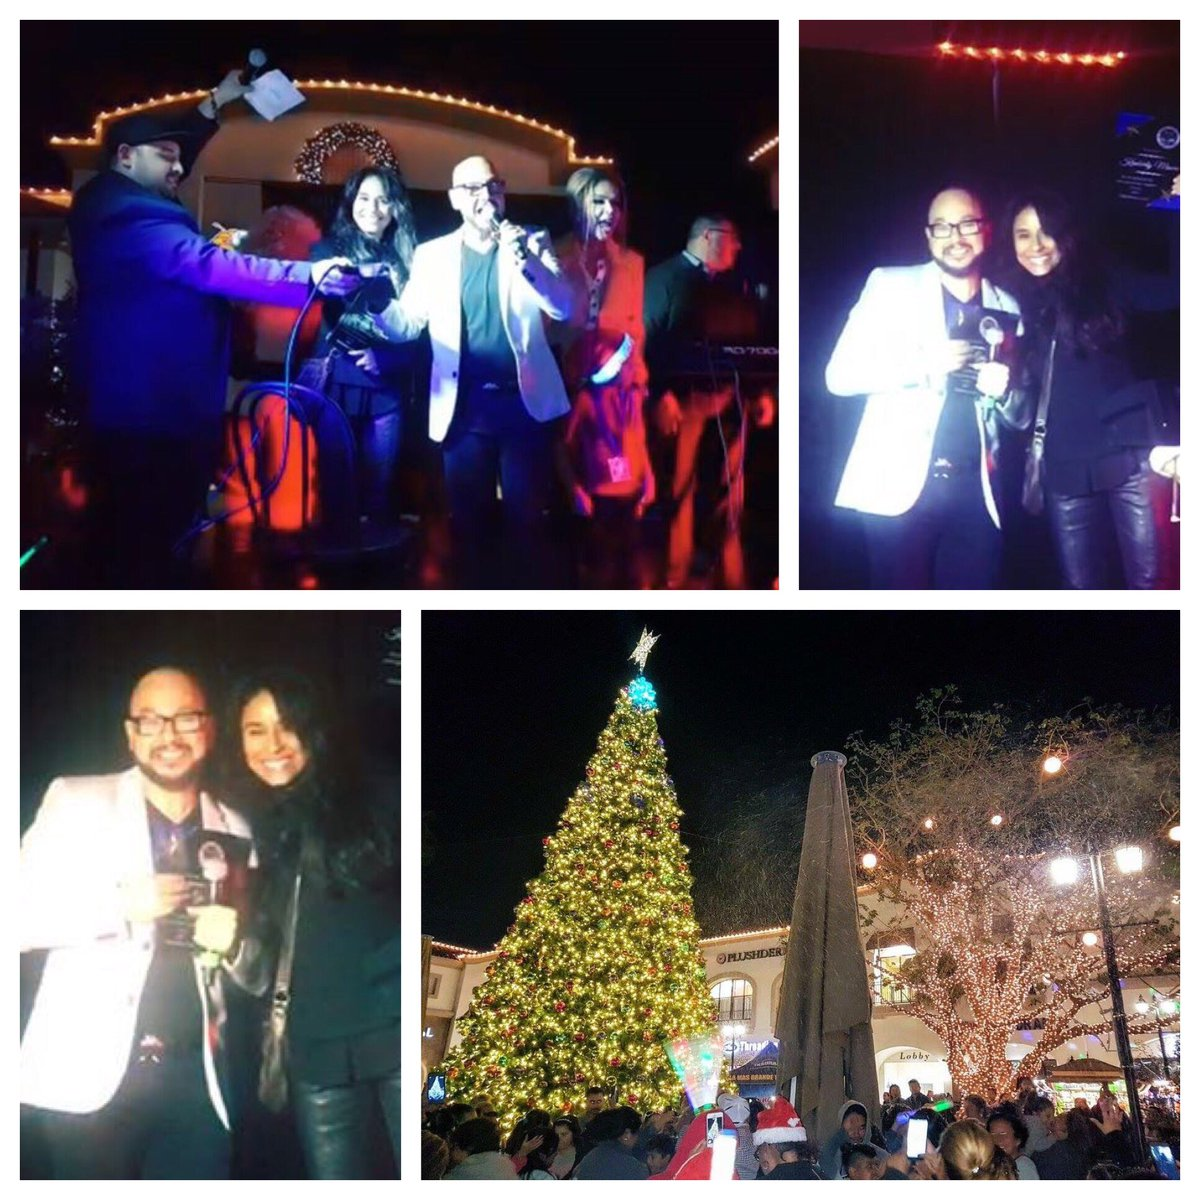 This year I got to light the Christmas tree w/@pepegarza of #QueBuena 105.5 FM, known as one of most influential figures in Mexican regional music to kickoff the holiday season w/local members of Plaza La Alameda community & some of the @Adoptaletter kids we helped over the yearspic.twitter.com/JYuNNjbuyY